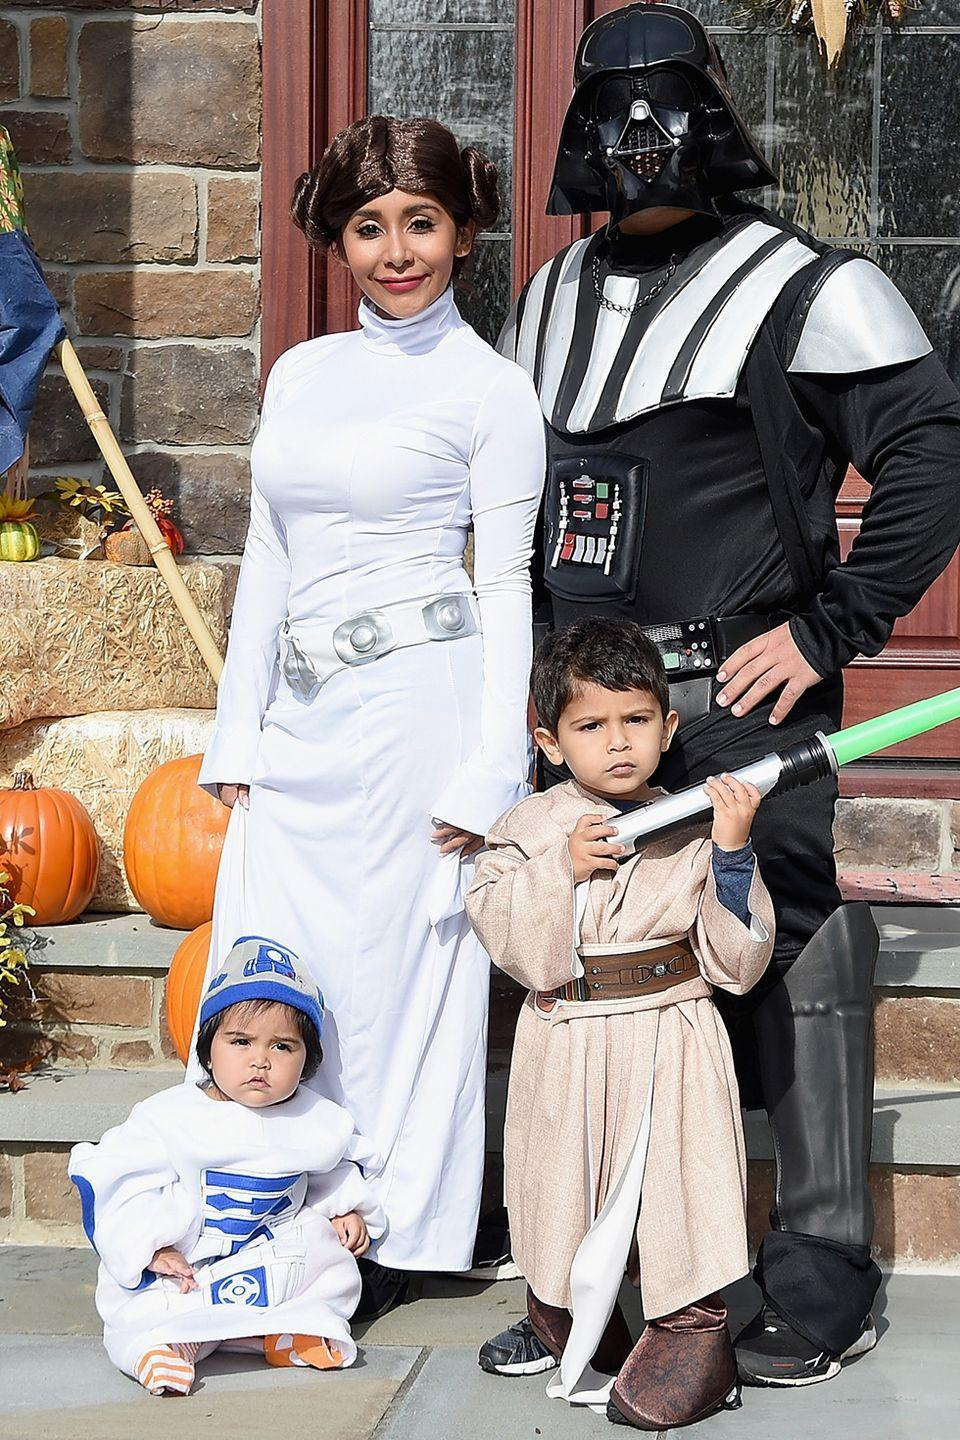 <p><em>Jersey Shore</em>'s Nicole 'Snooki' Polizzi, husband Jionni Lavalle, and their kids dressed up as <em>Star Wars</em> characters in 2015. They have another kiddo now, so it'll be fun to see what they break out for 2020...</p>